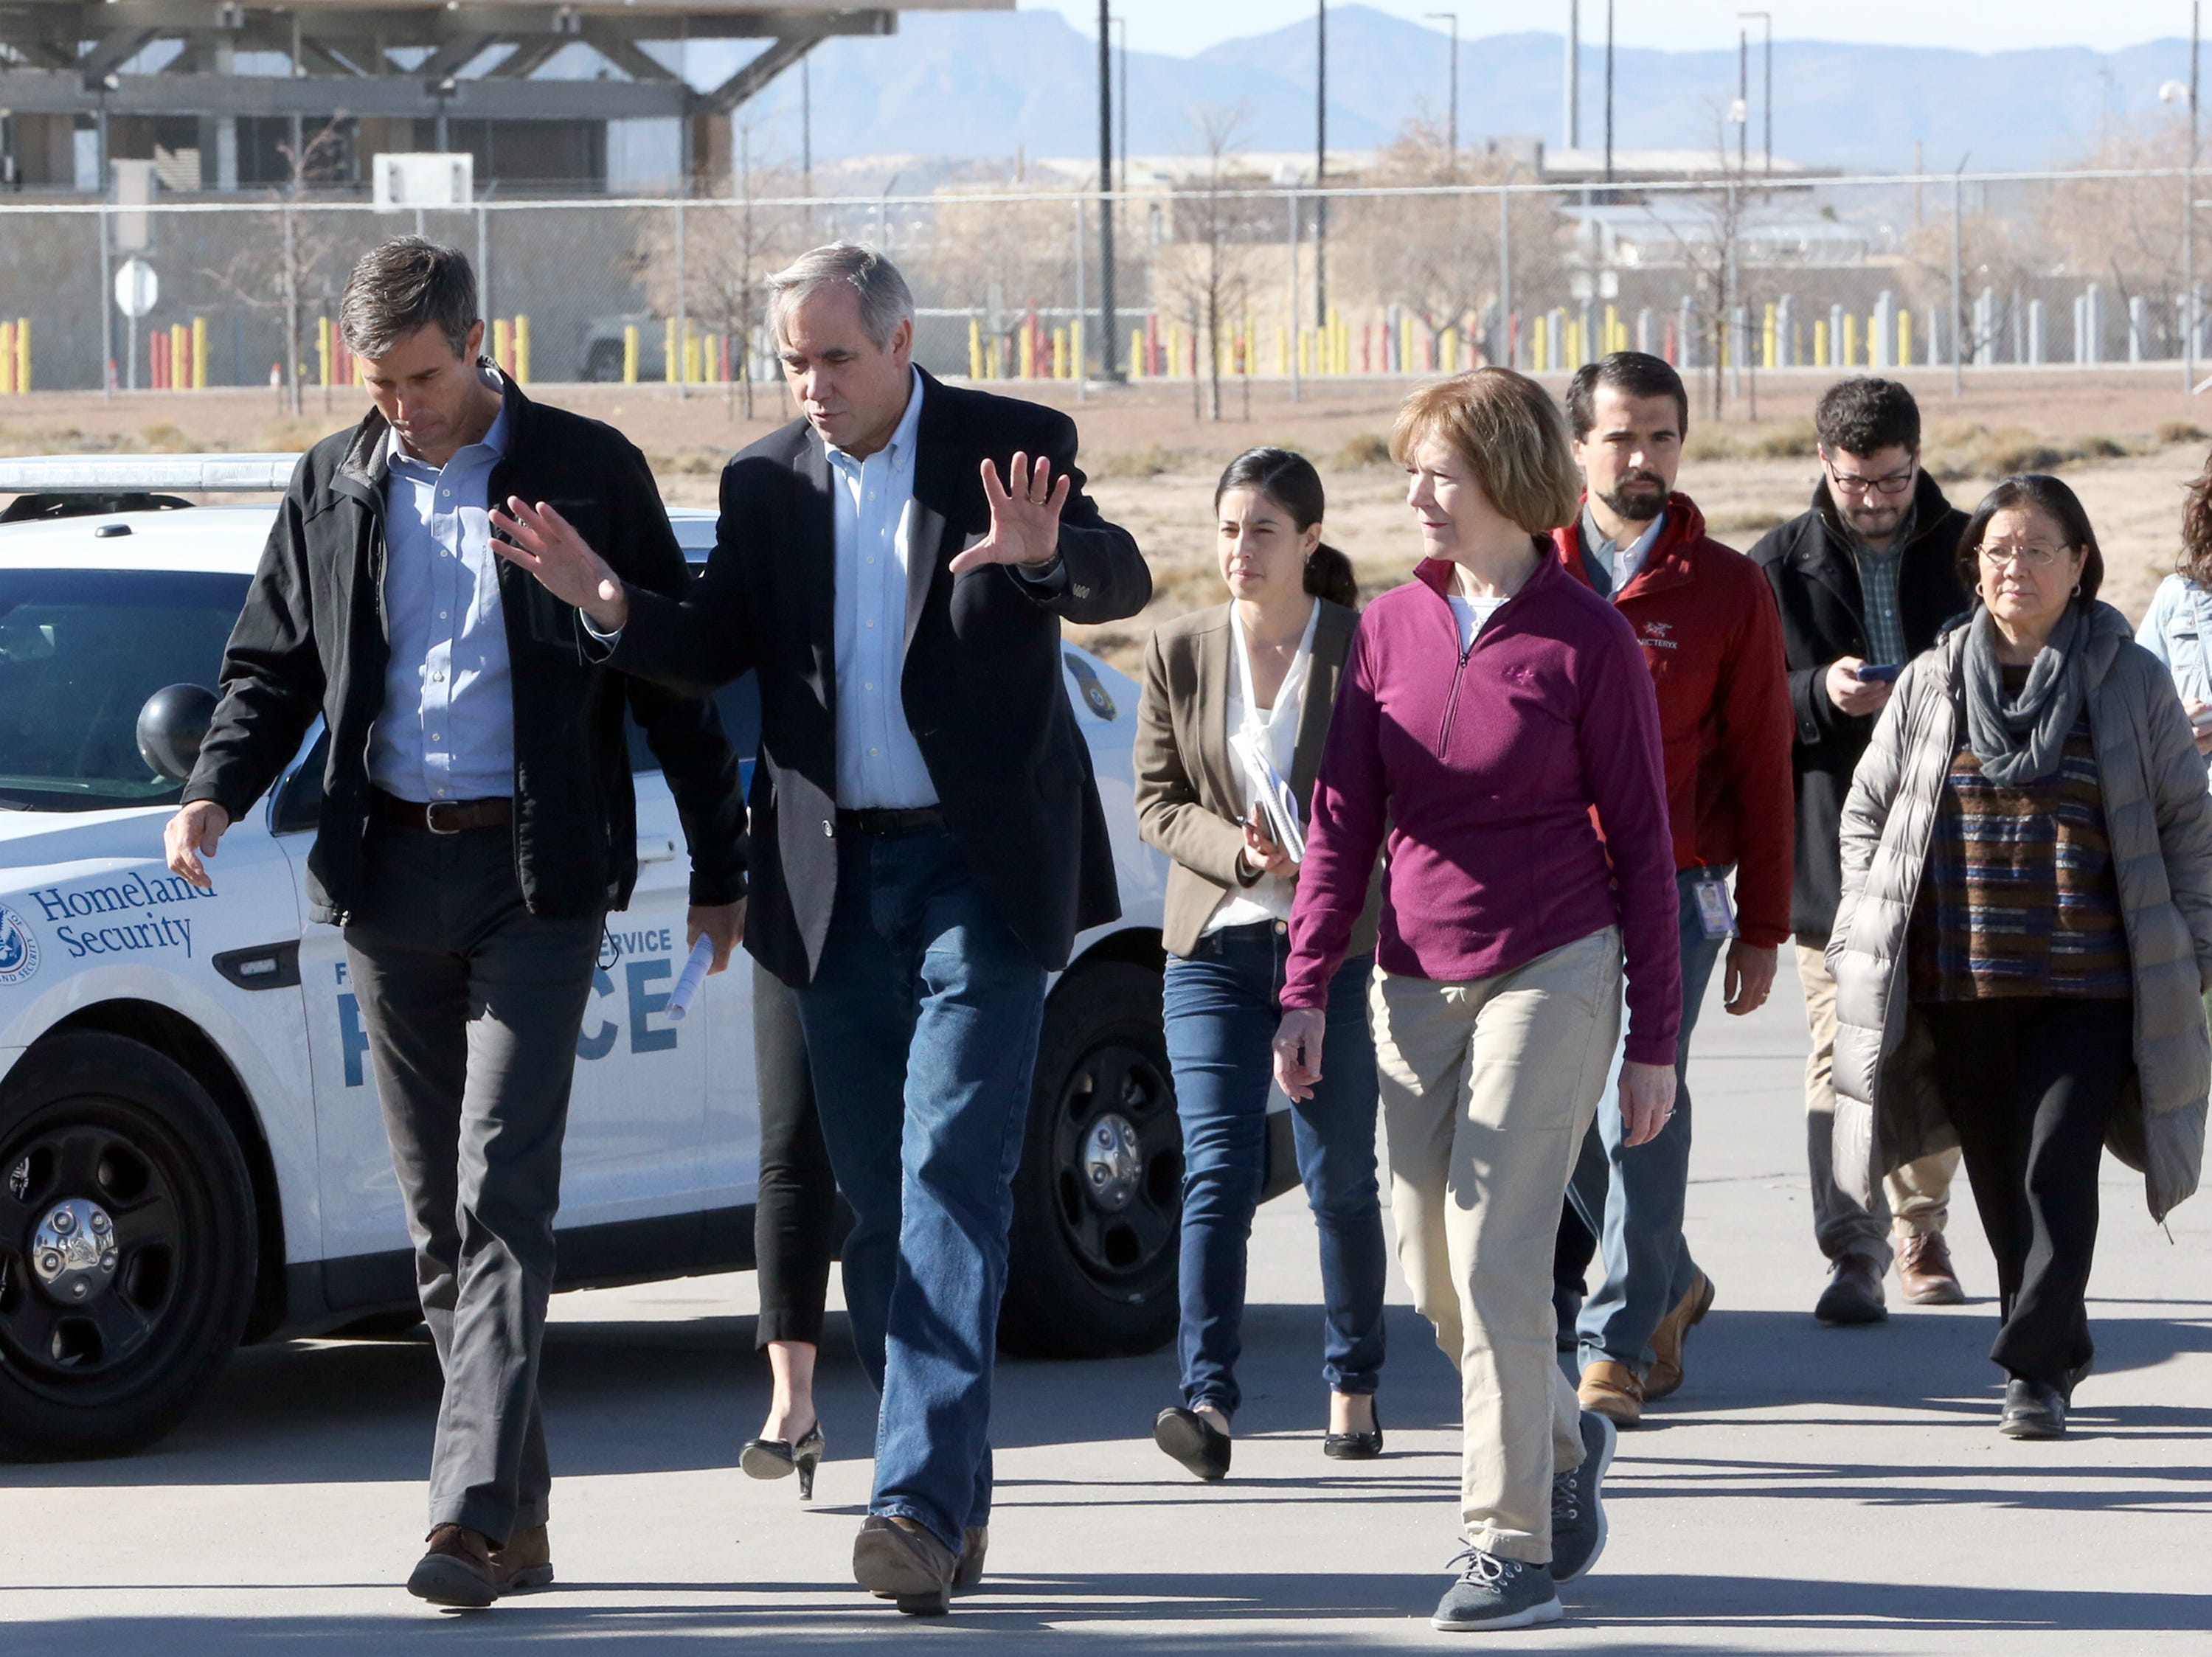 U.S. Rep. Beto O'Rourke, left, walks out of the Tornillo port of entry with Sen. Jeff Merkley, center, and other Democratic members of Congress who visited the area where more than 2,000 undocumented children are being housed Saturday.